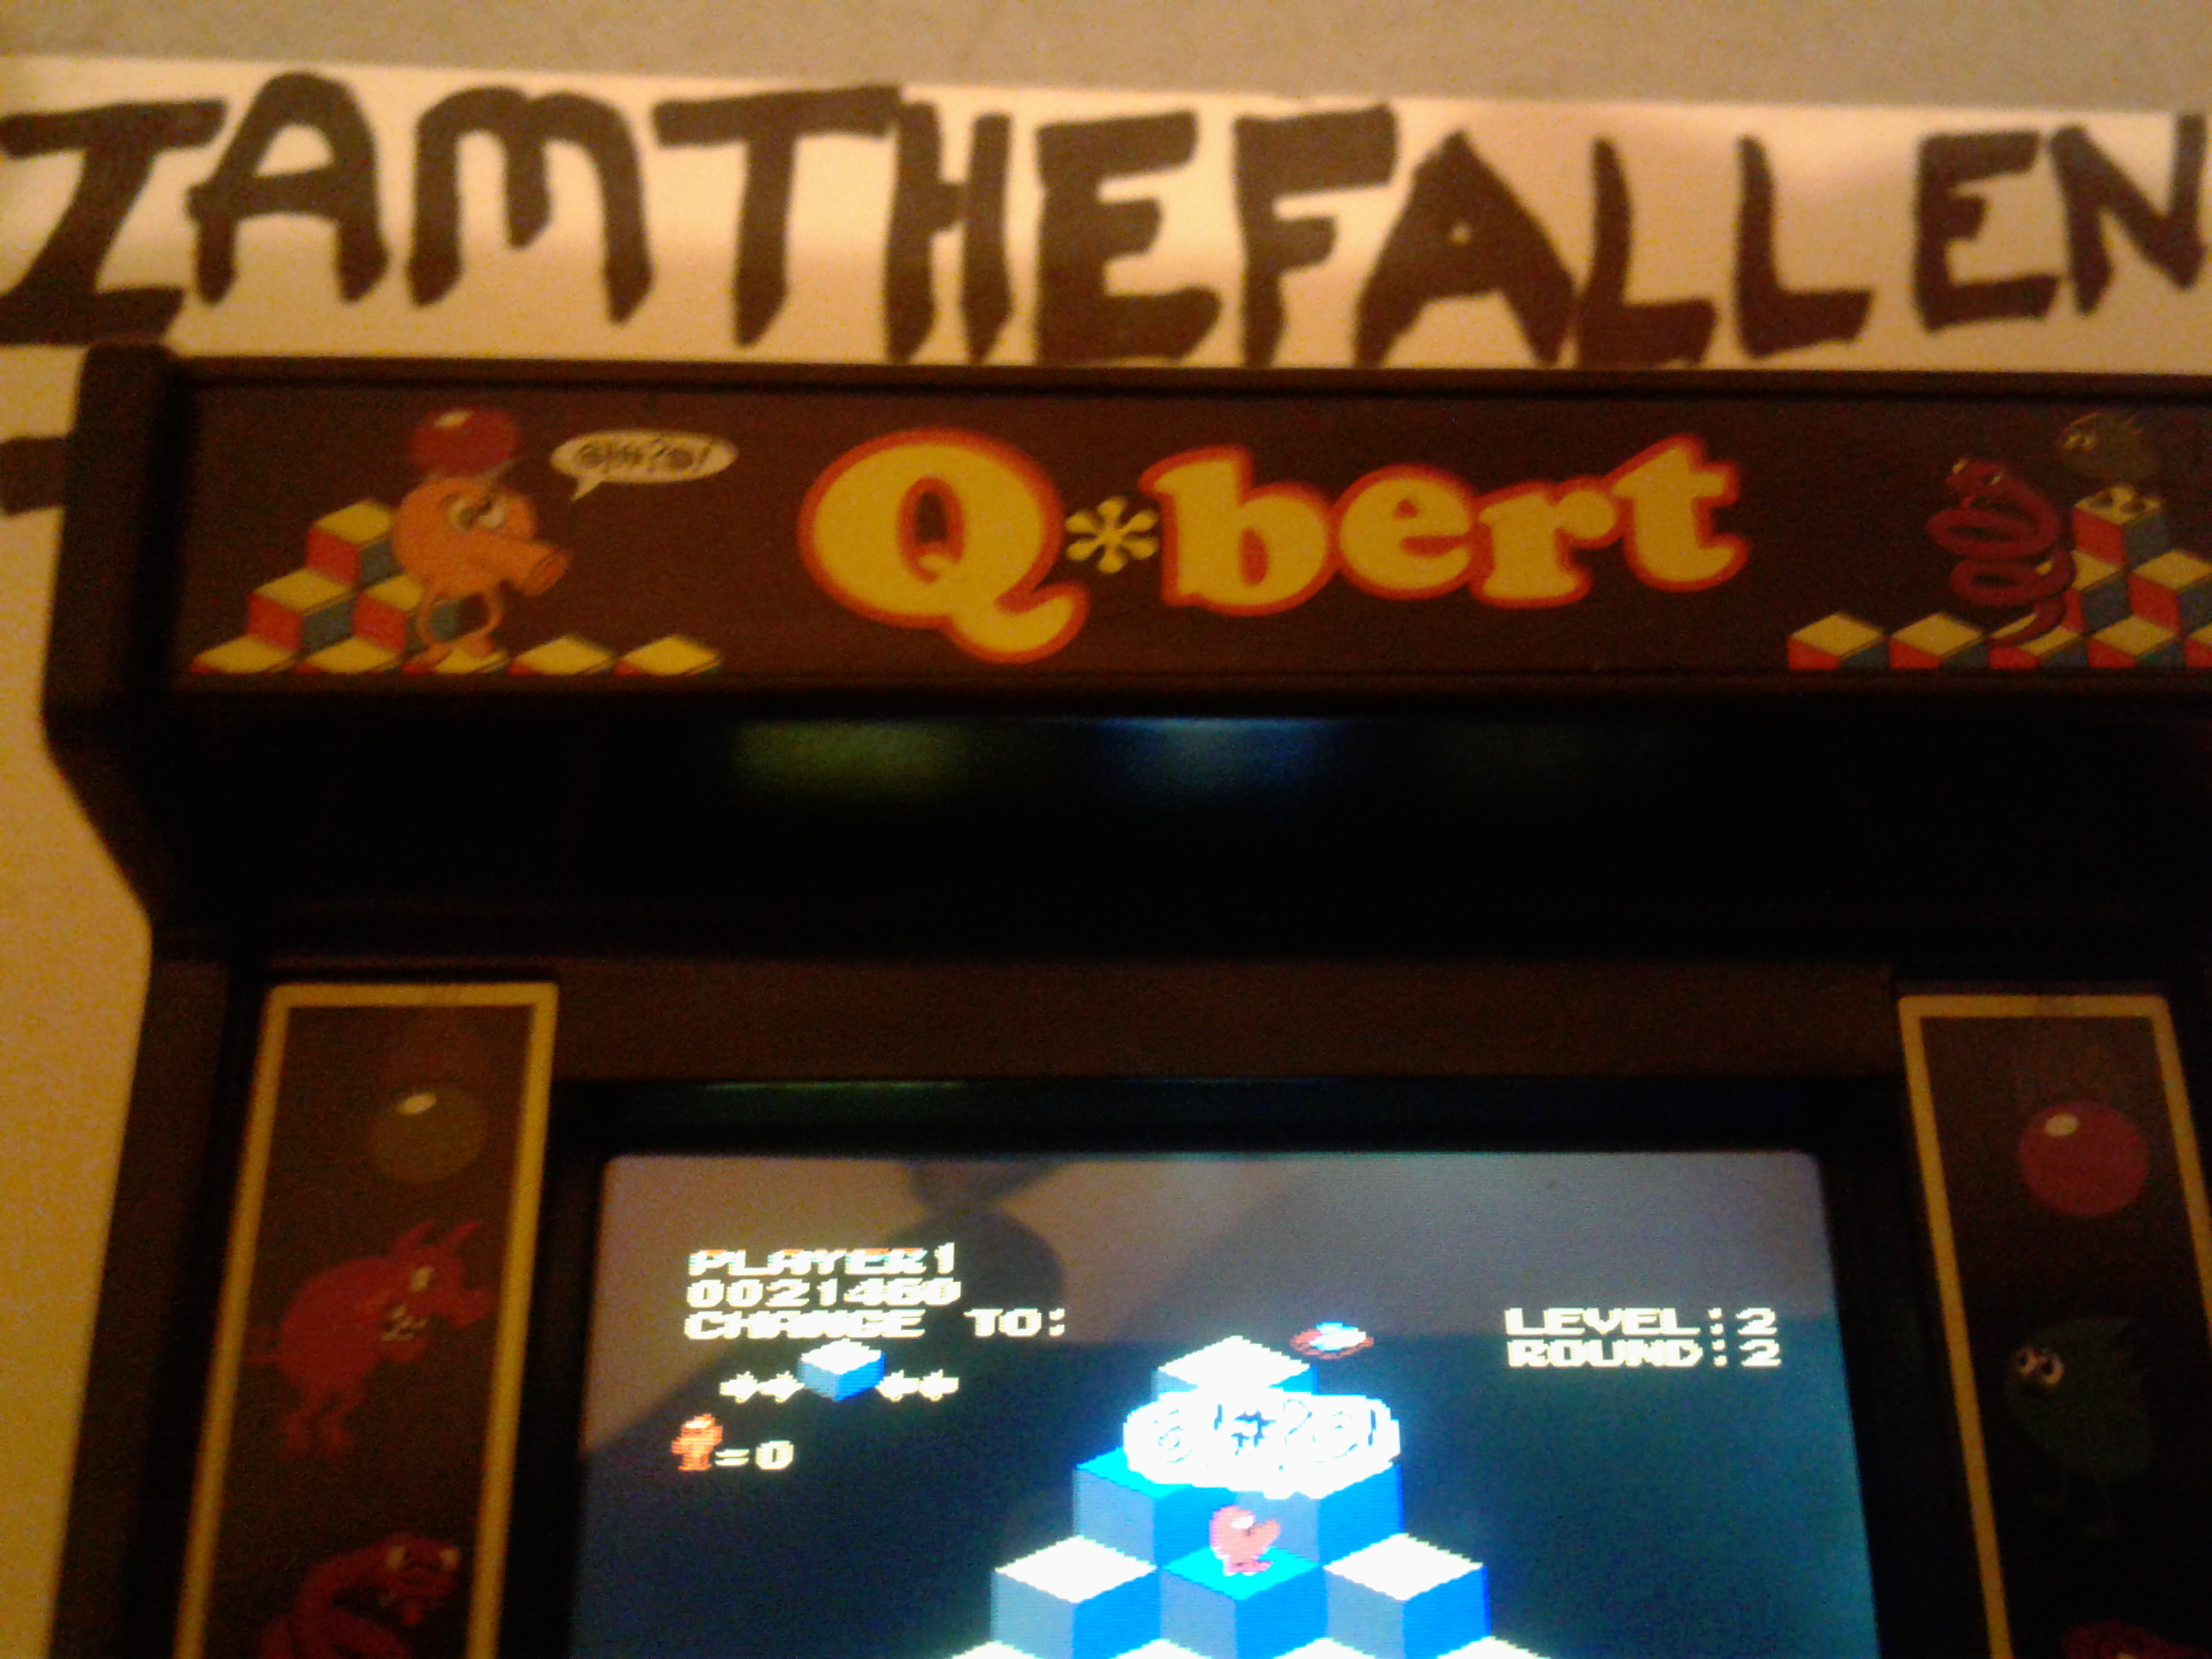 iamthefallen1: Arcade Classics 04: Q*bert (Dedicated Handheld) 21,460 points on 2017-09-13 16:43:39